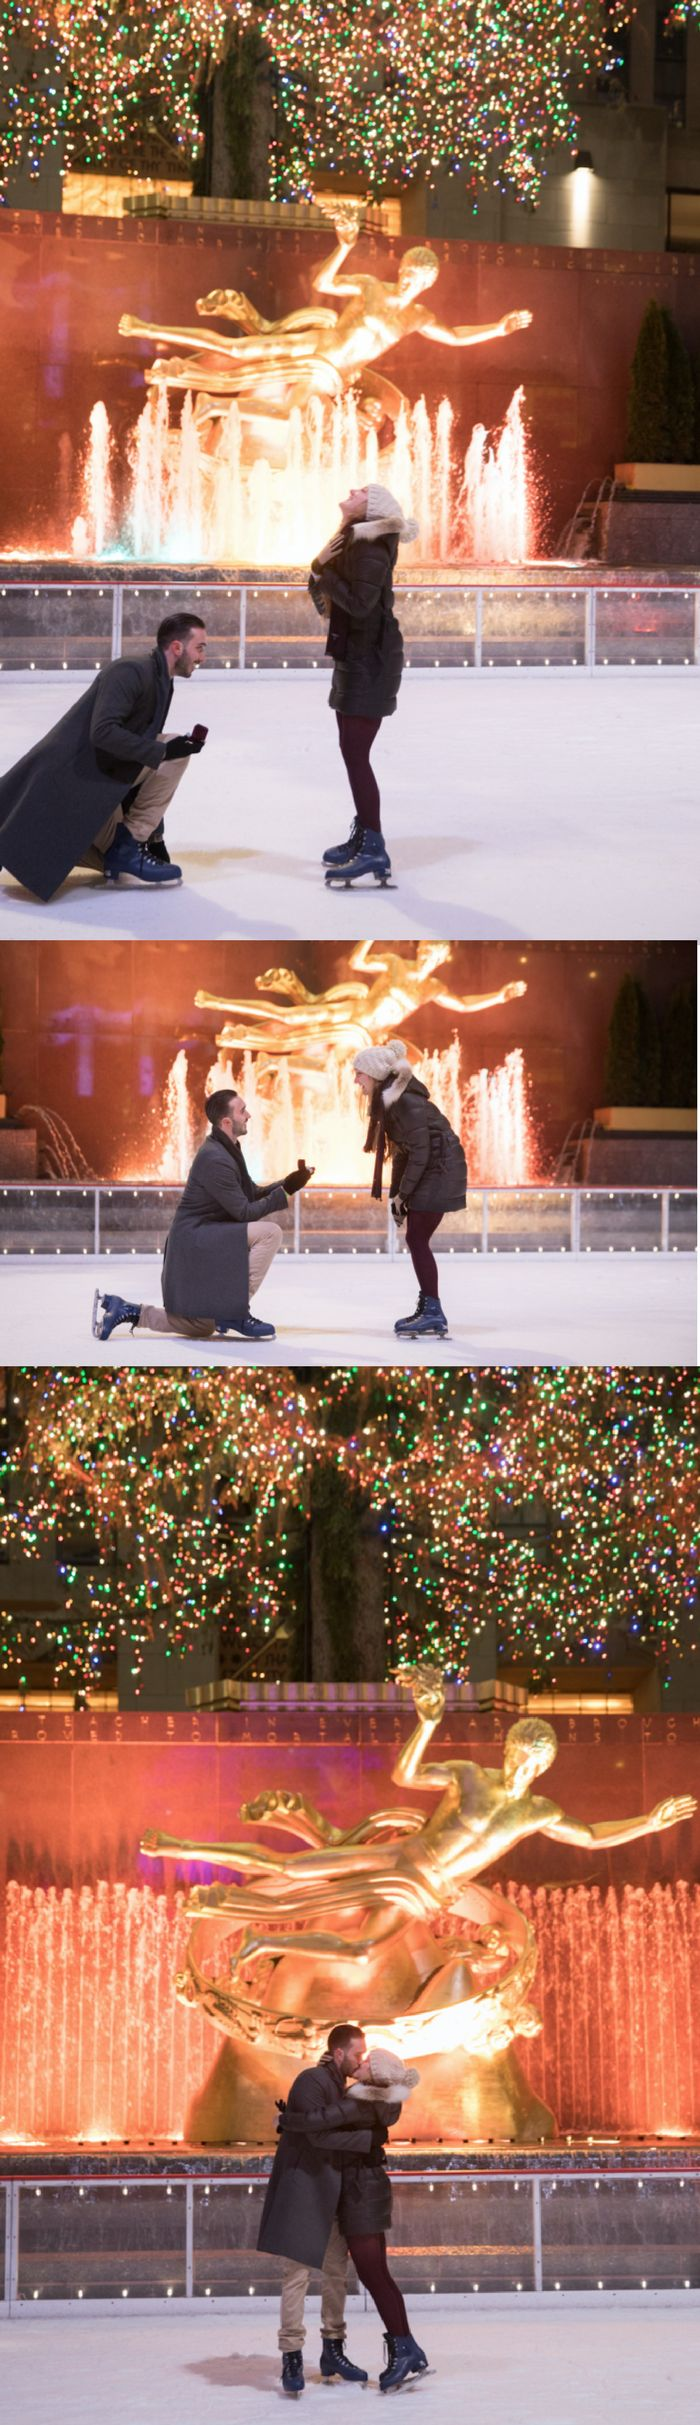 Loving this romantic proposal at Rockefeller Center in NYC, and the surprises didn't stop after she said yes!